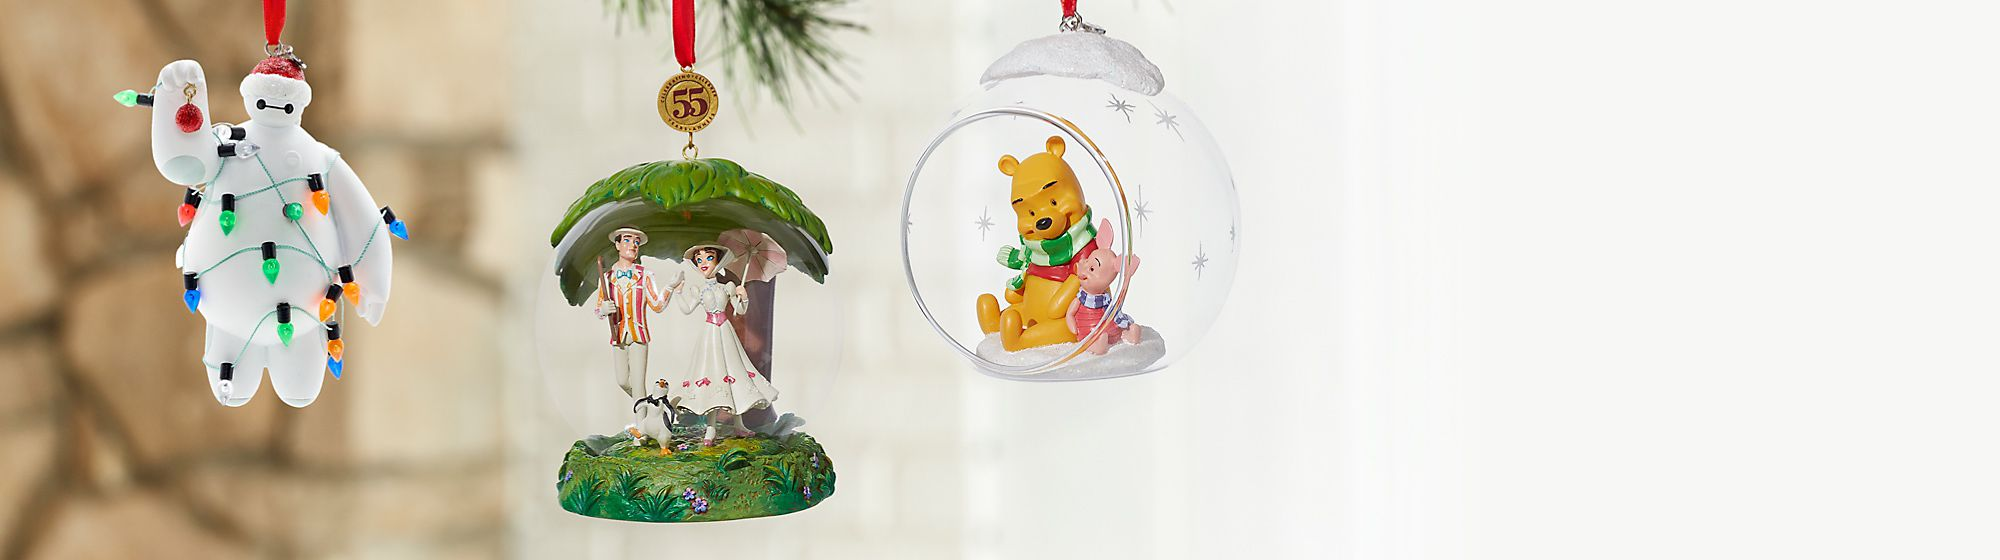 Christmas Ornaments 3 for 2 on selected lines